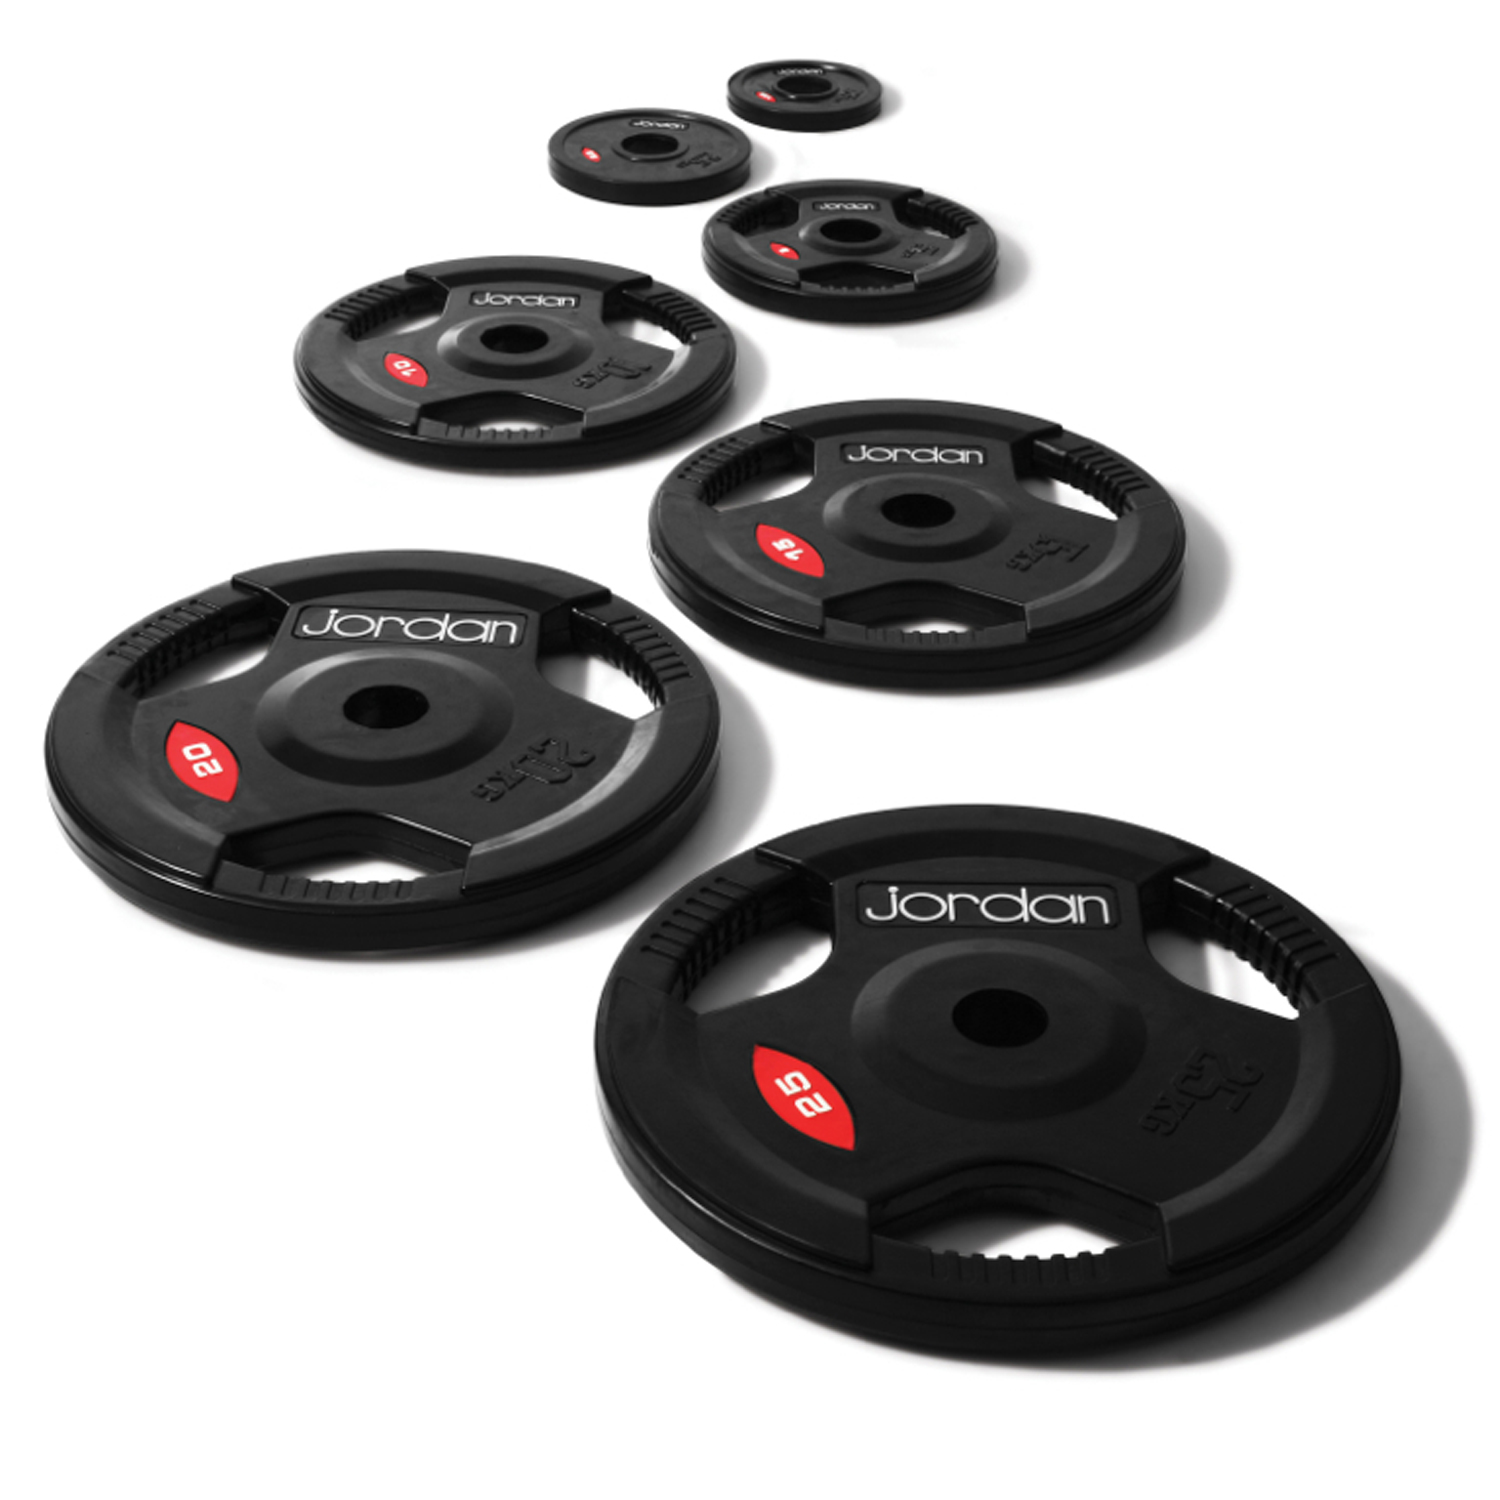 Olympic Round Black Rubber Discs 10kg